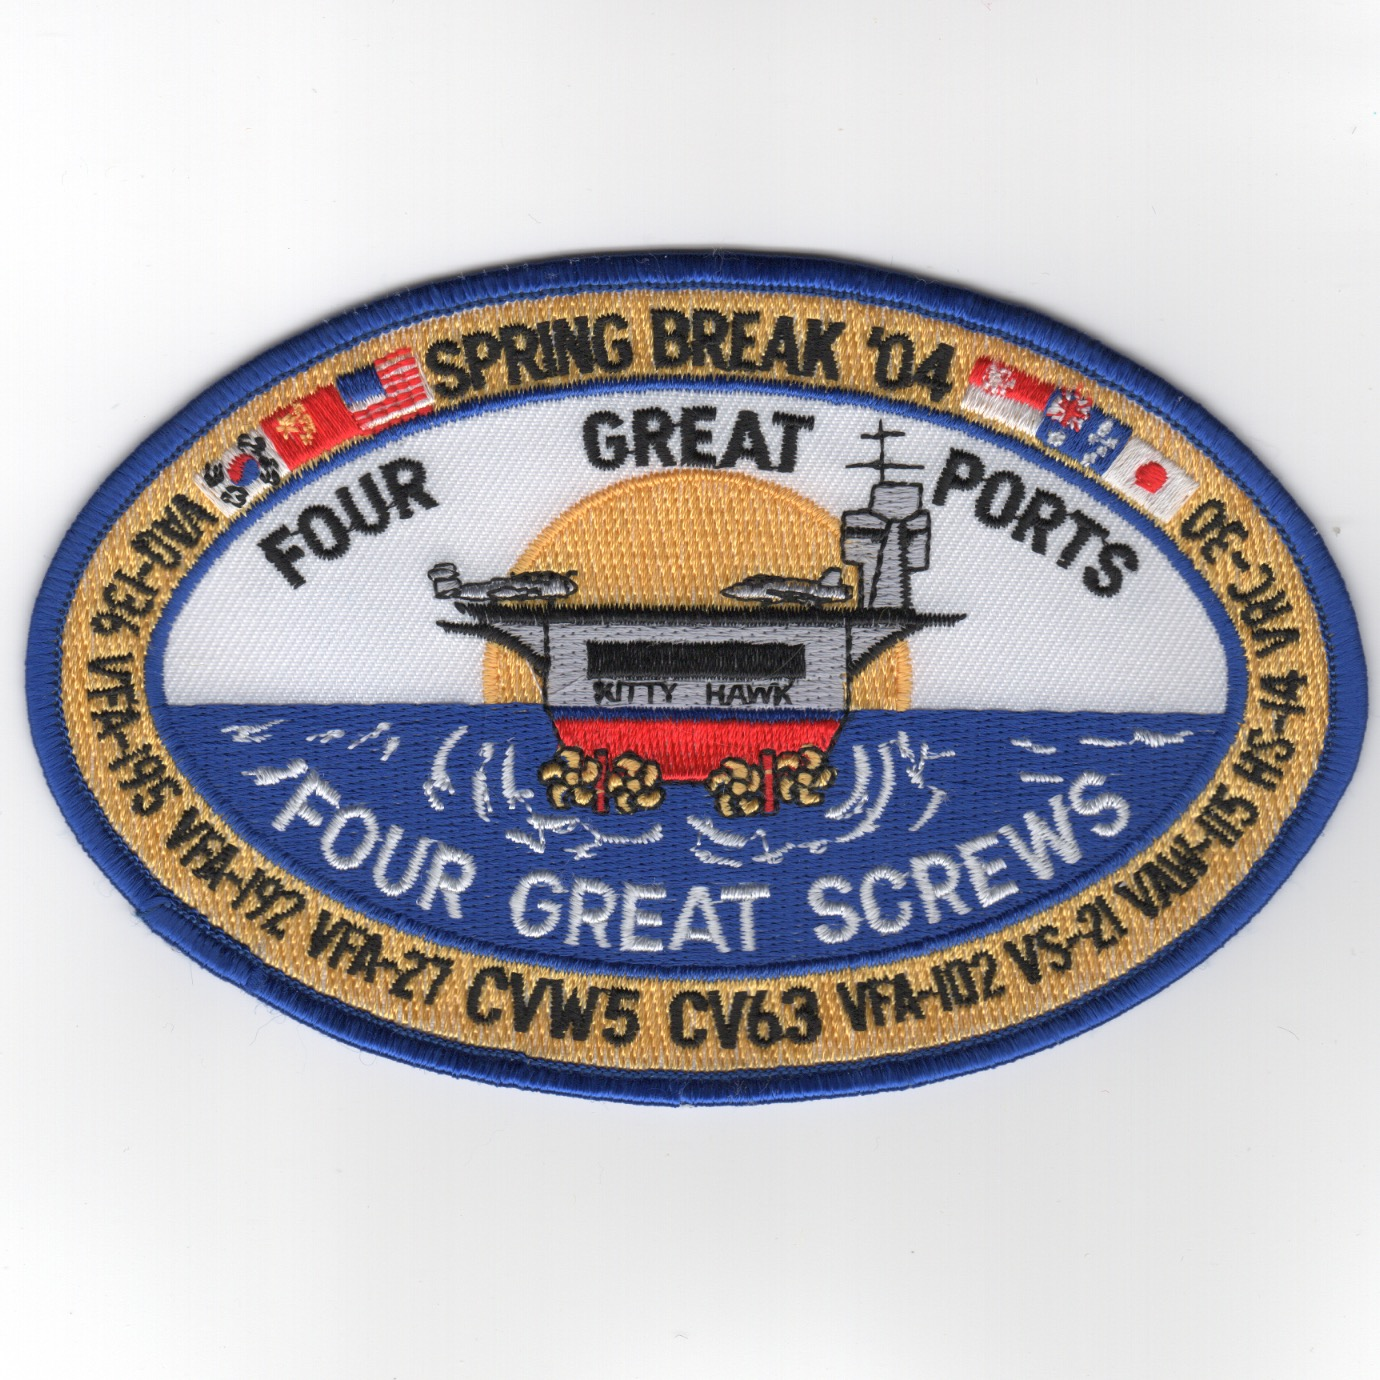 376) CV-63/CVW-5 2004 Spring Break Cruise Patch